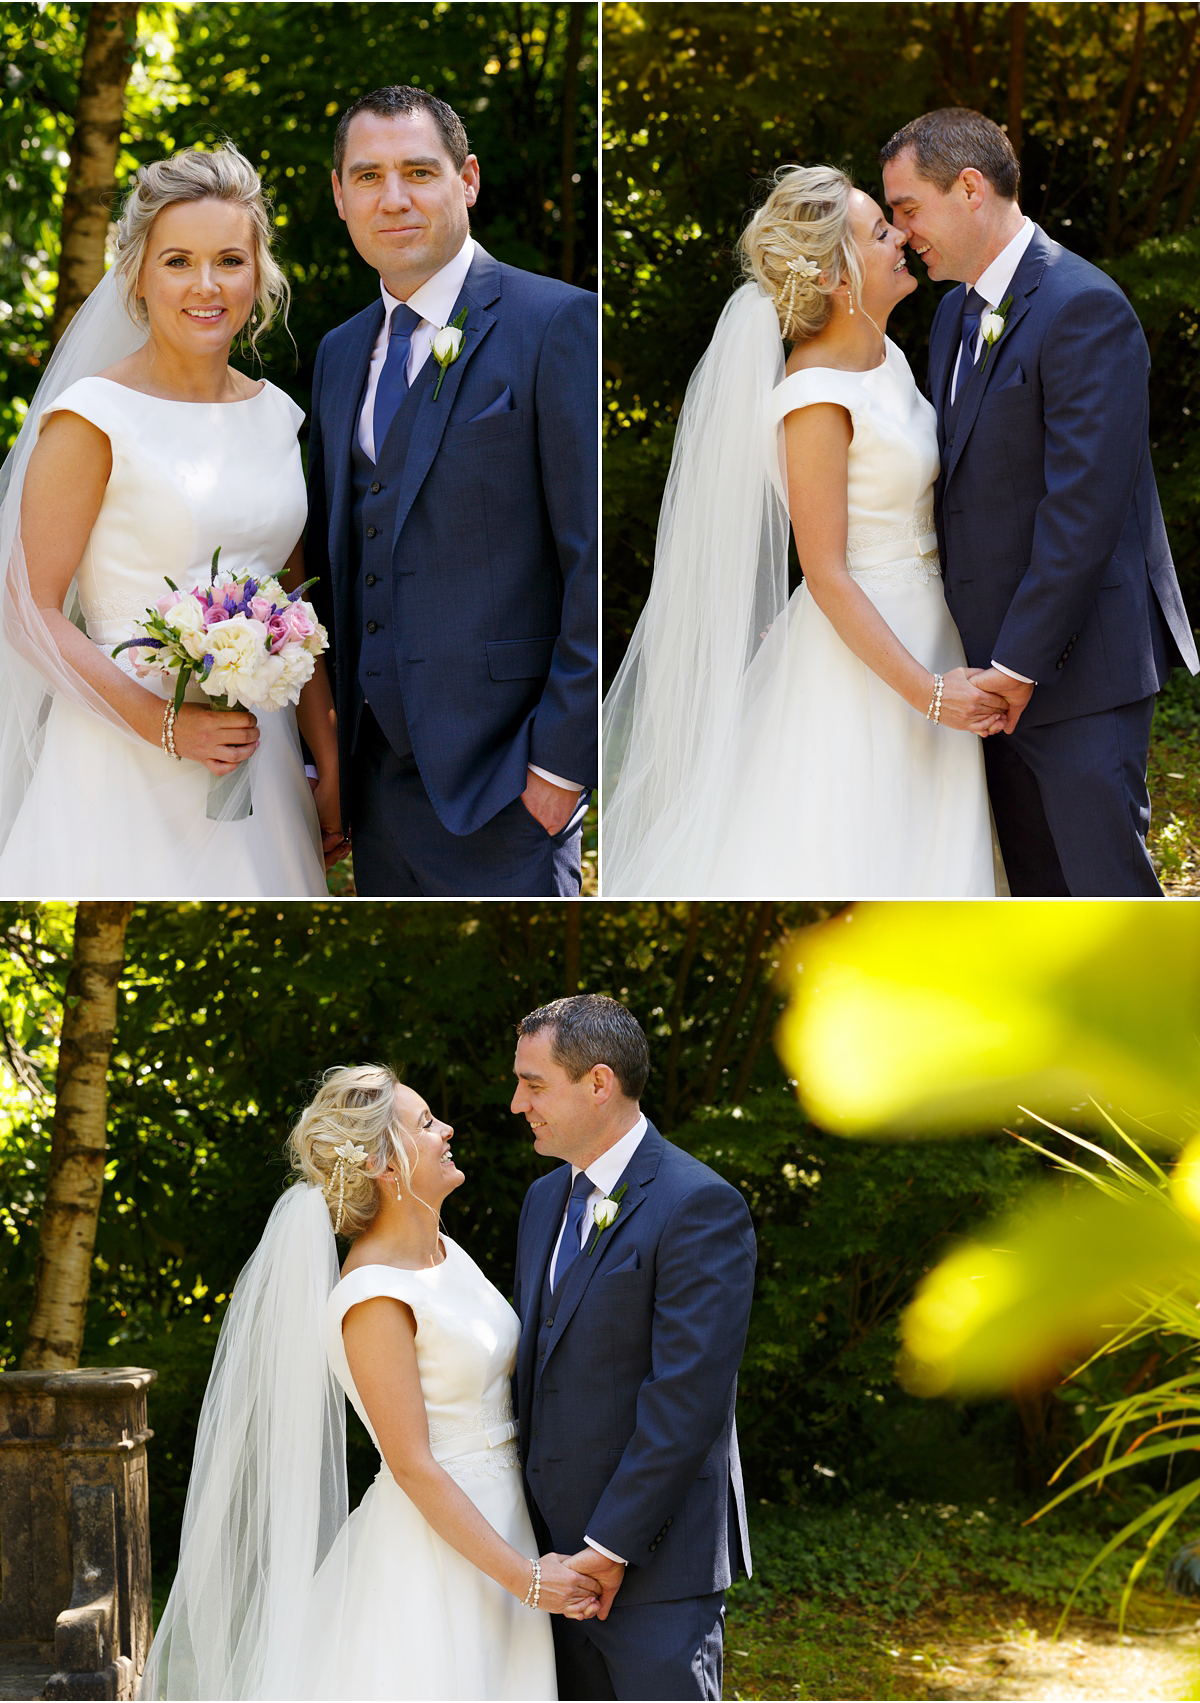 Ballinacurra House wedding natural photographs in the gardens